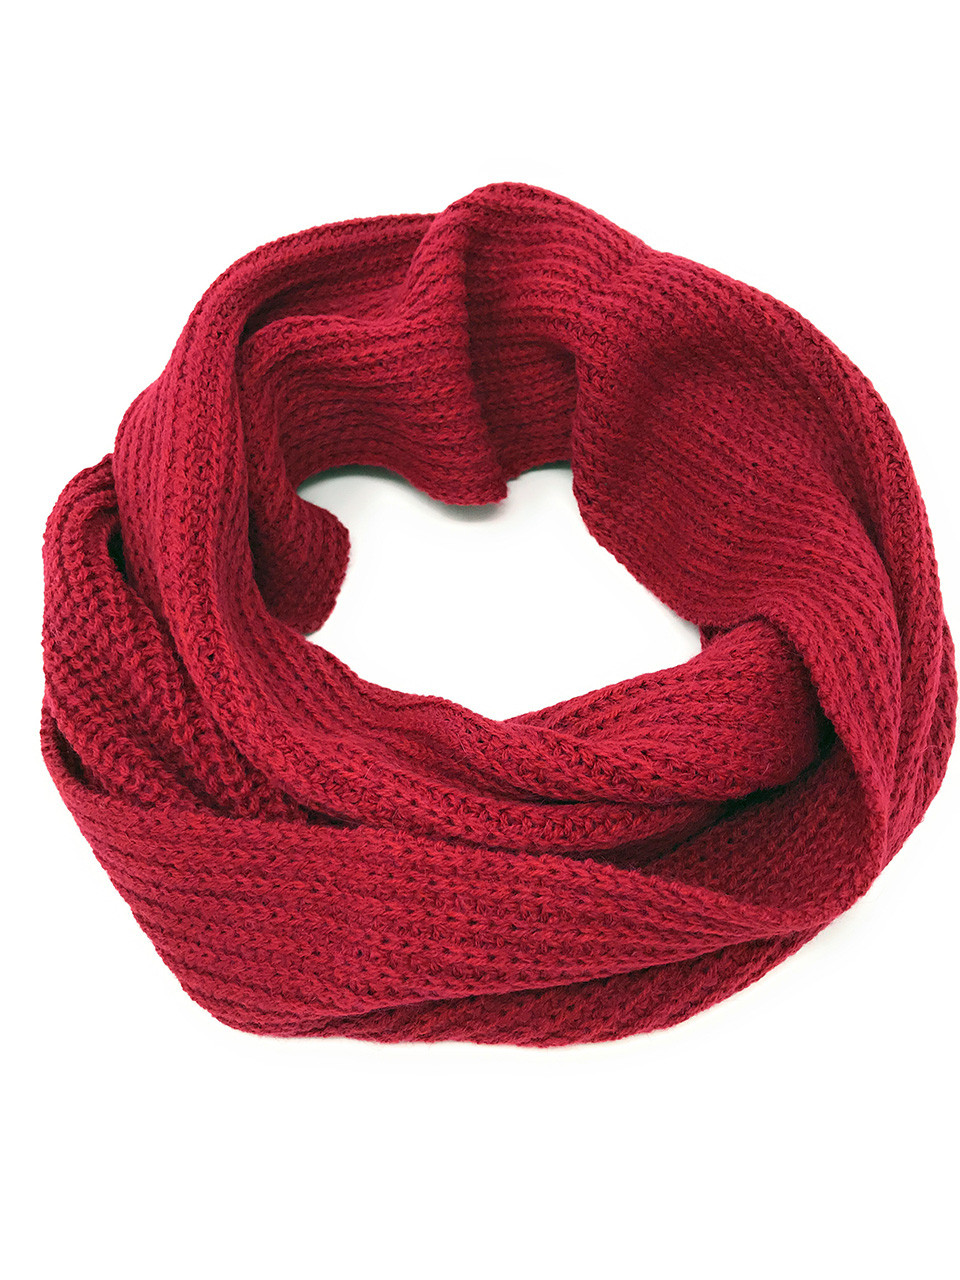 Infinity Loop Knitted by Hand WARM Acrylic Circular Scarf Made to Order